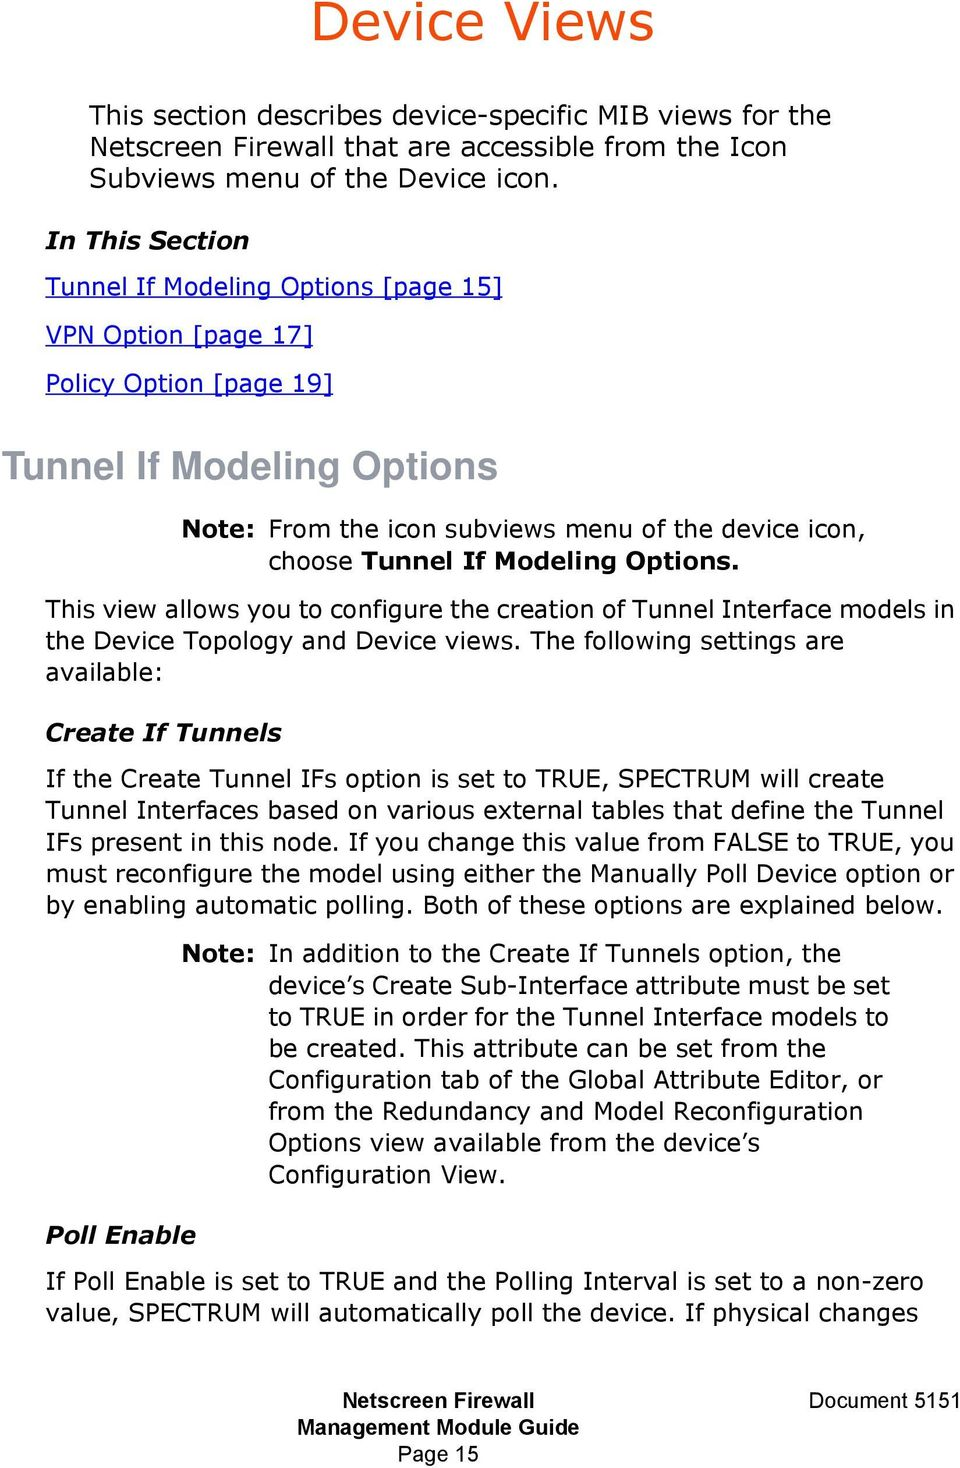 Modeling Options. This view allows you to configure the creation of Tunnel Interface models in the Device Topology and Device views.